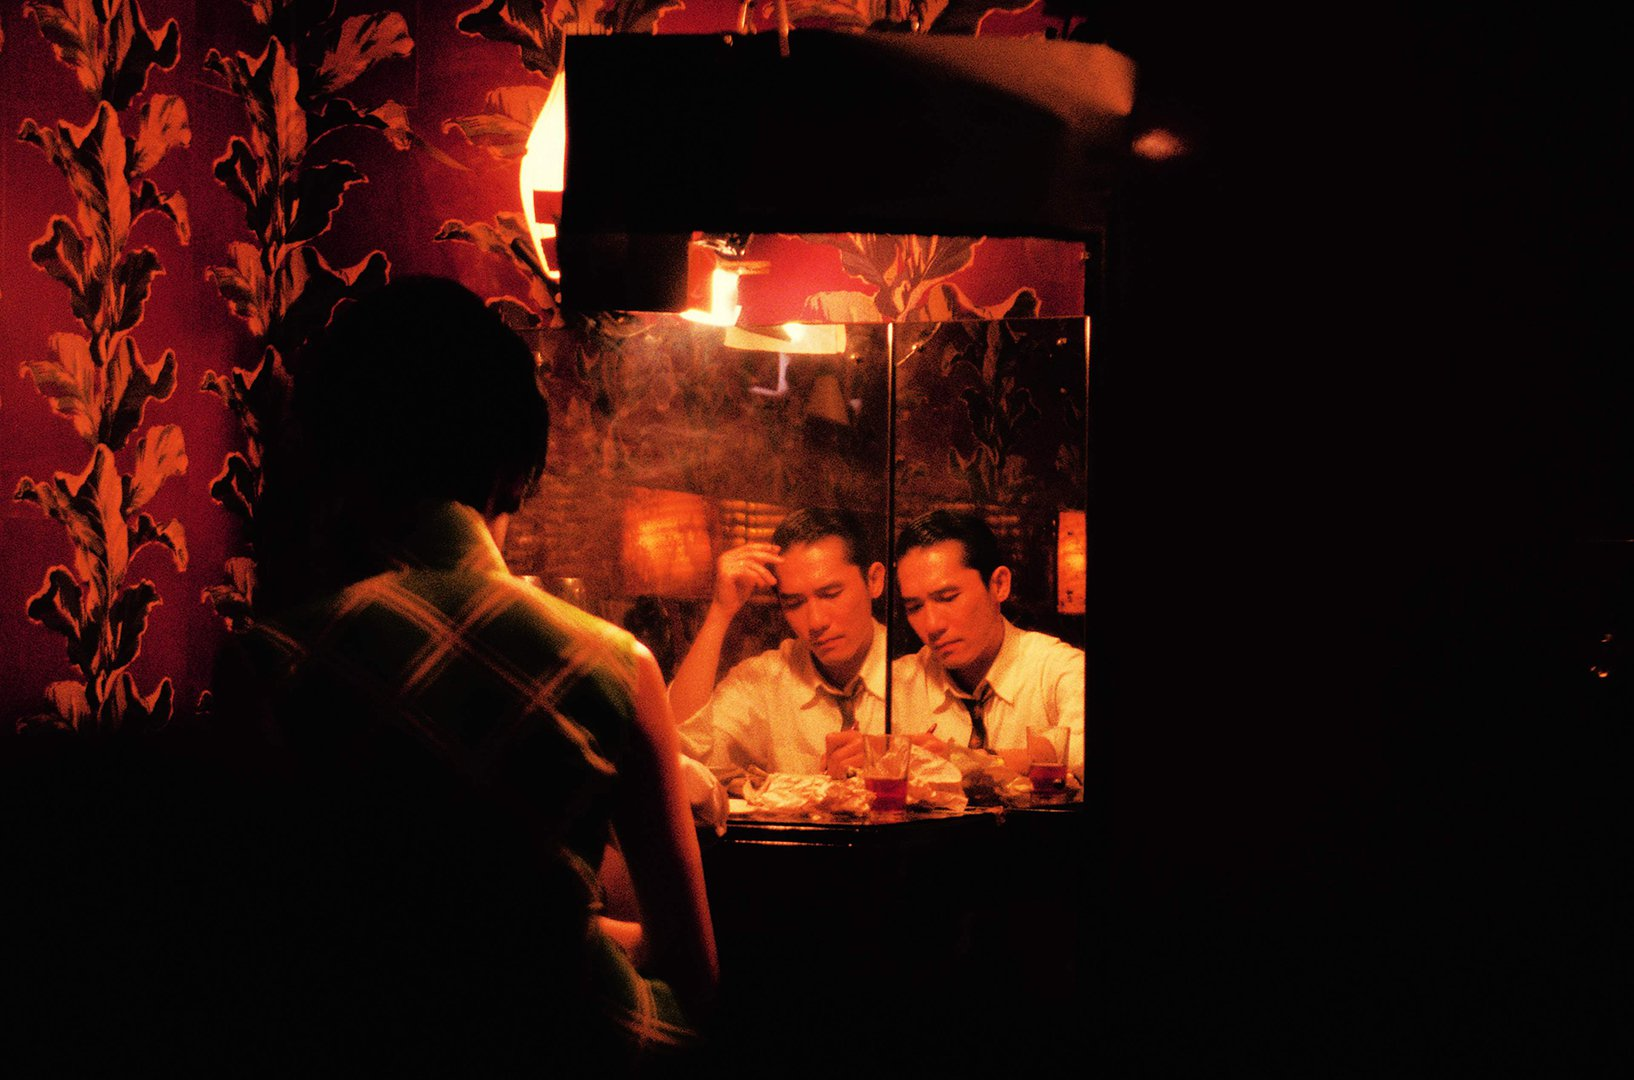 A mirror image of Mr Chow - In the Mood for Love